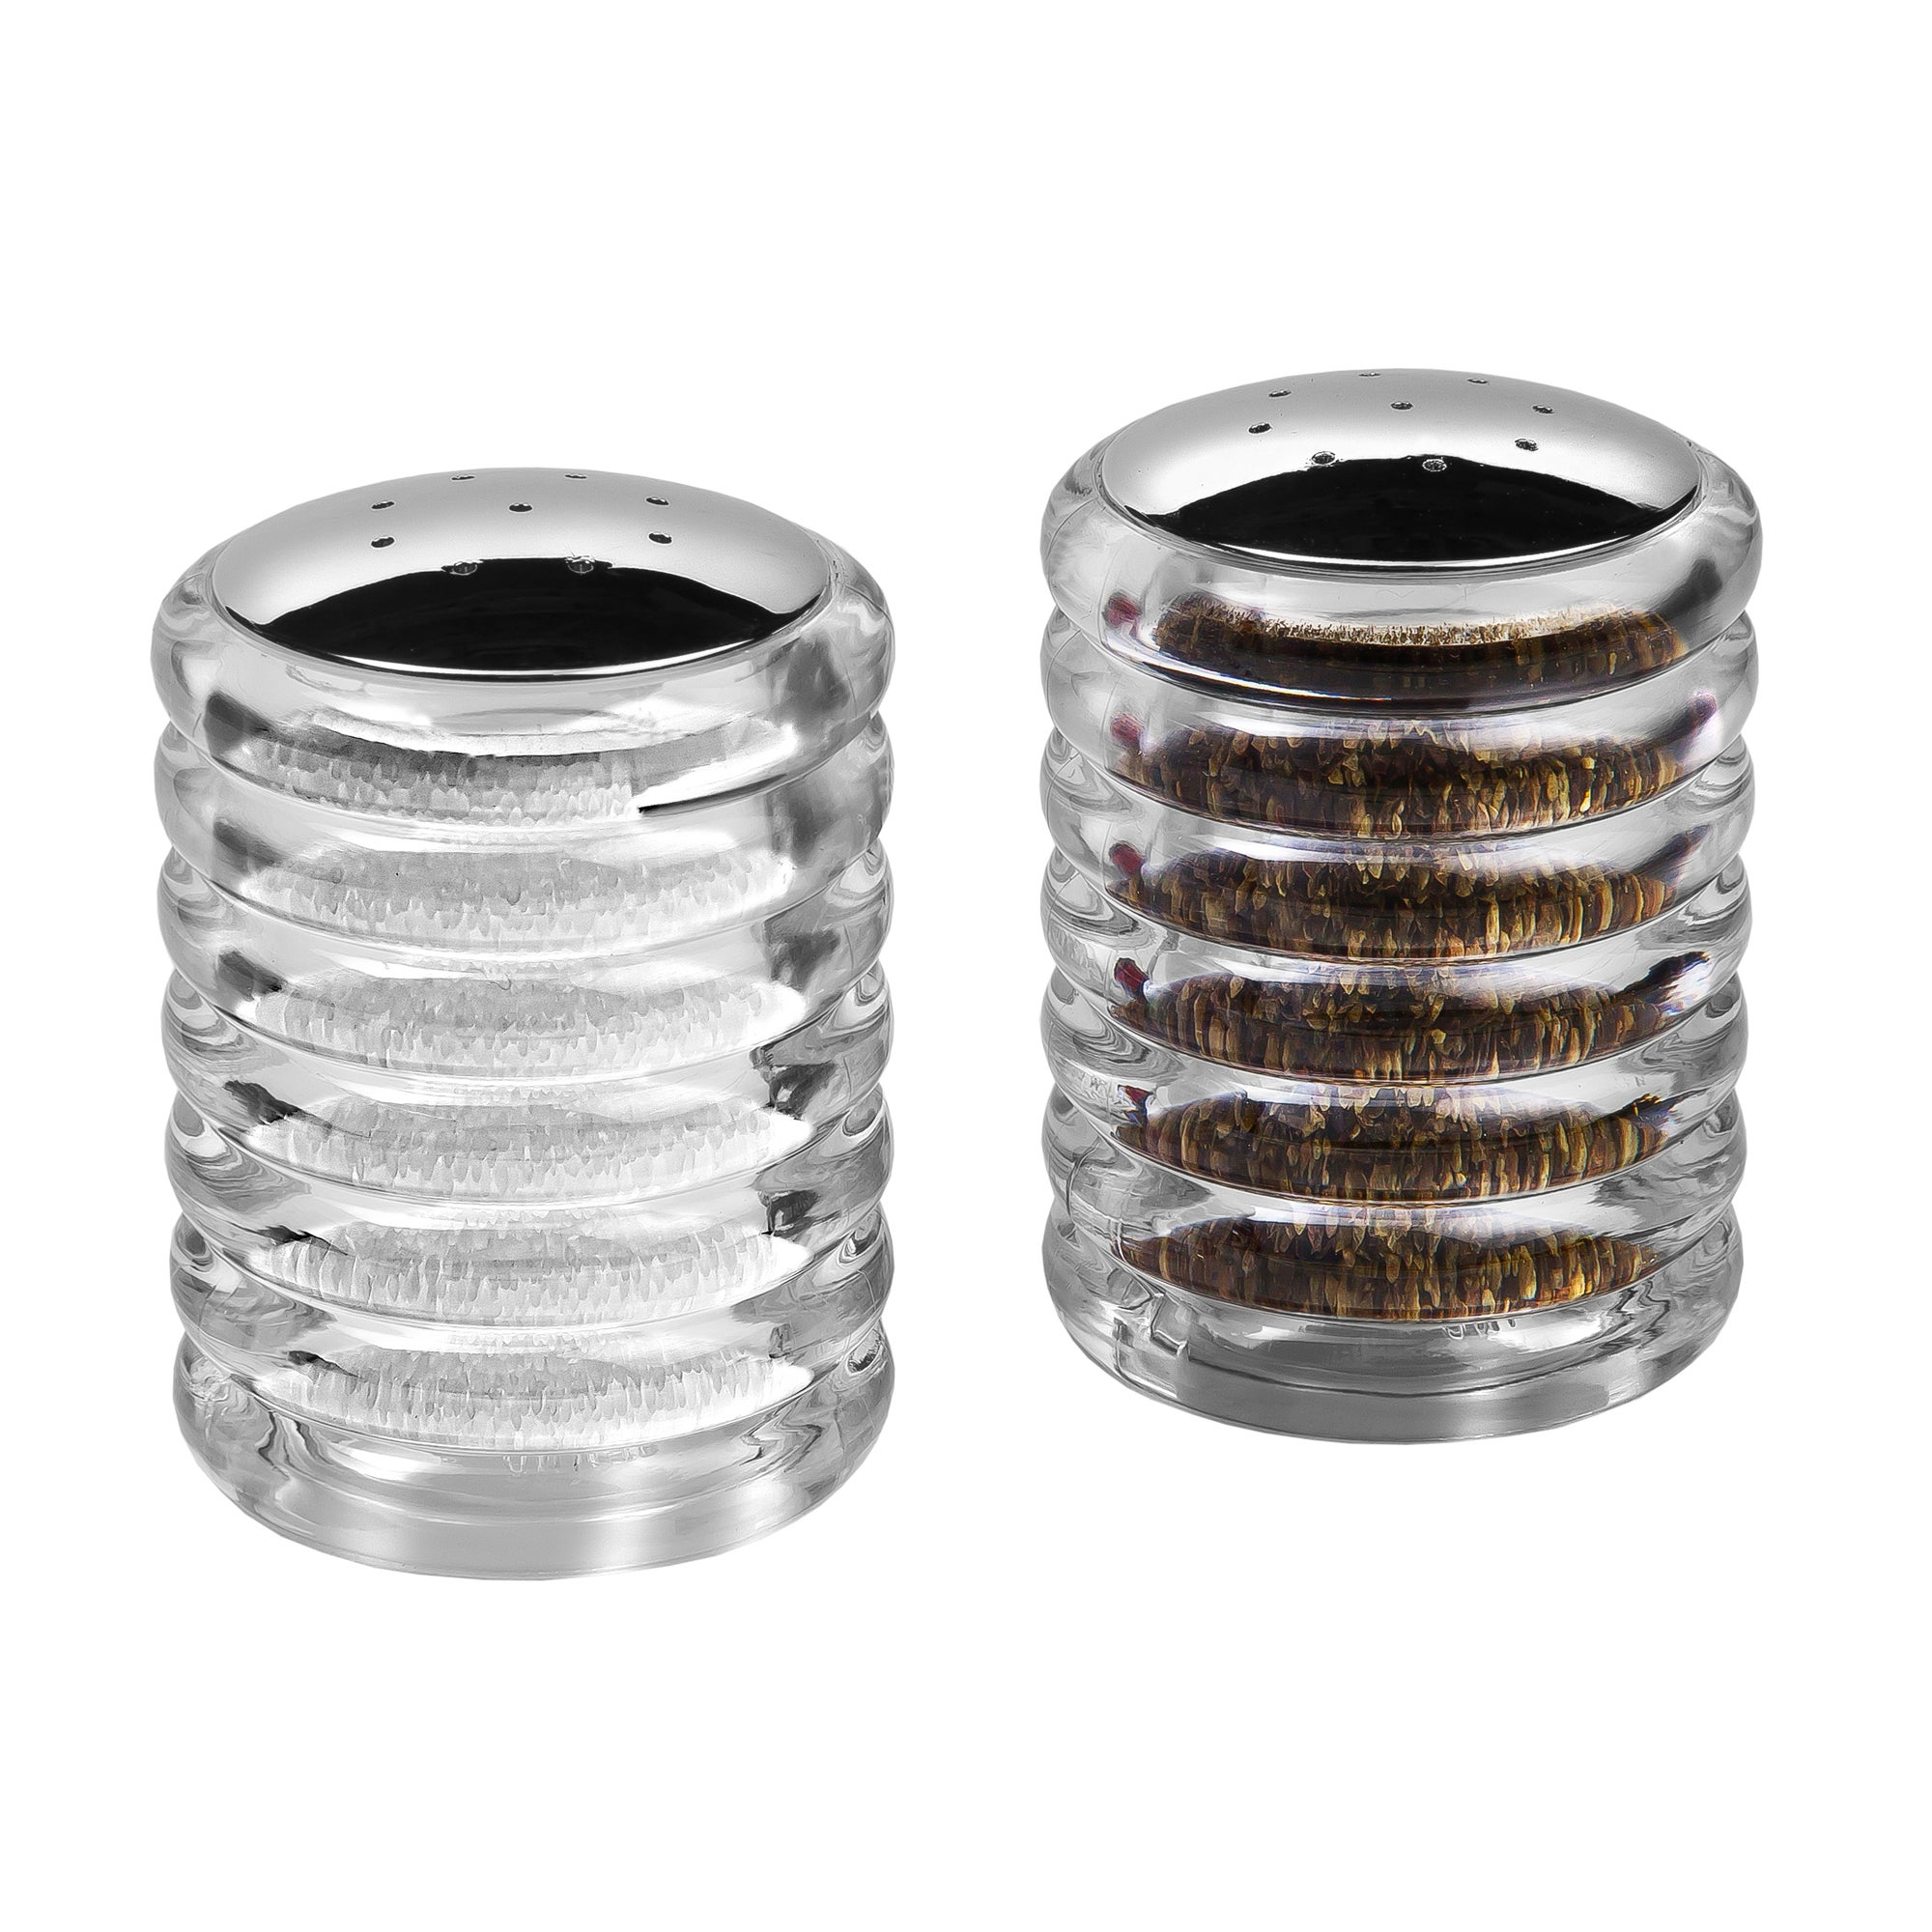 Photo of Cole & mason beehive salt and pepper shakers clear